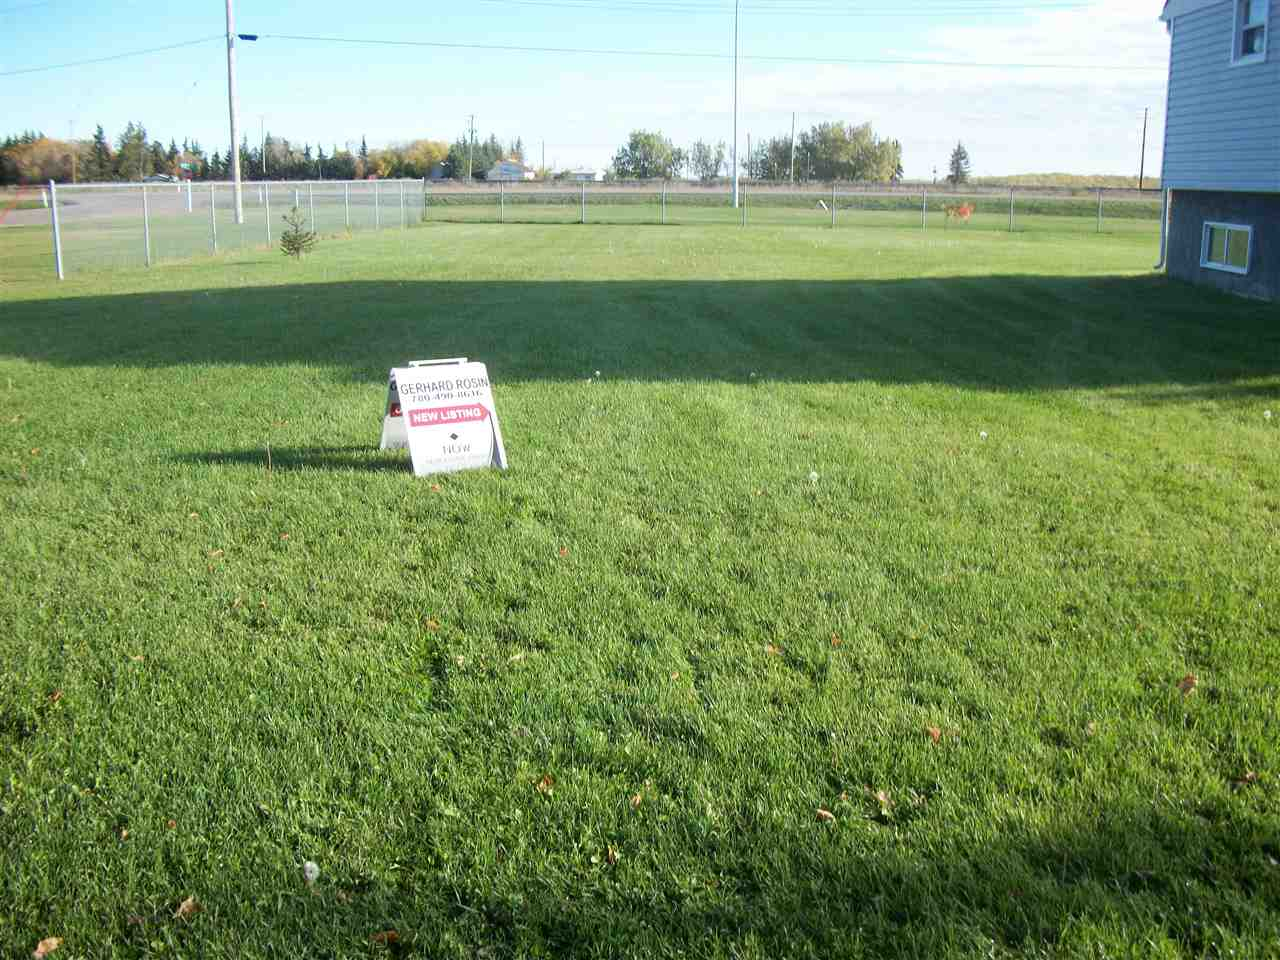 Lowest price for a lot in Chipman. All utility services available. Paved road access. A great place to build your dream home or buy the house next door at the same time for a great price and use the lot to store your toys. This is a great deal here in Chipman.